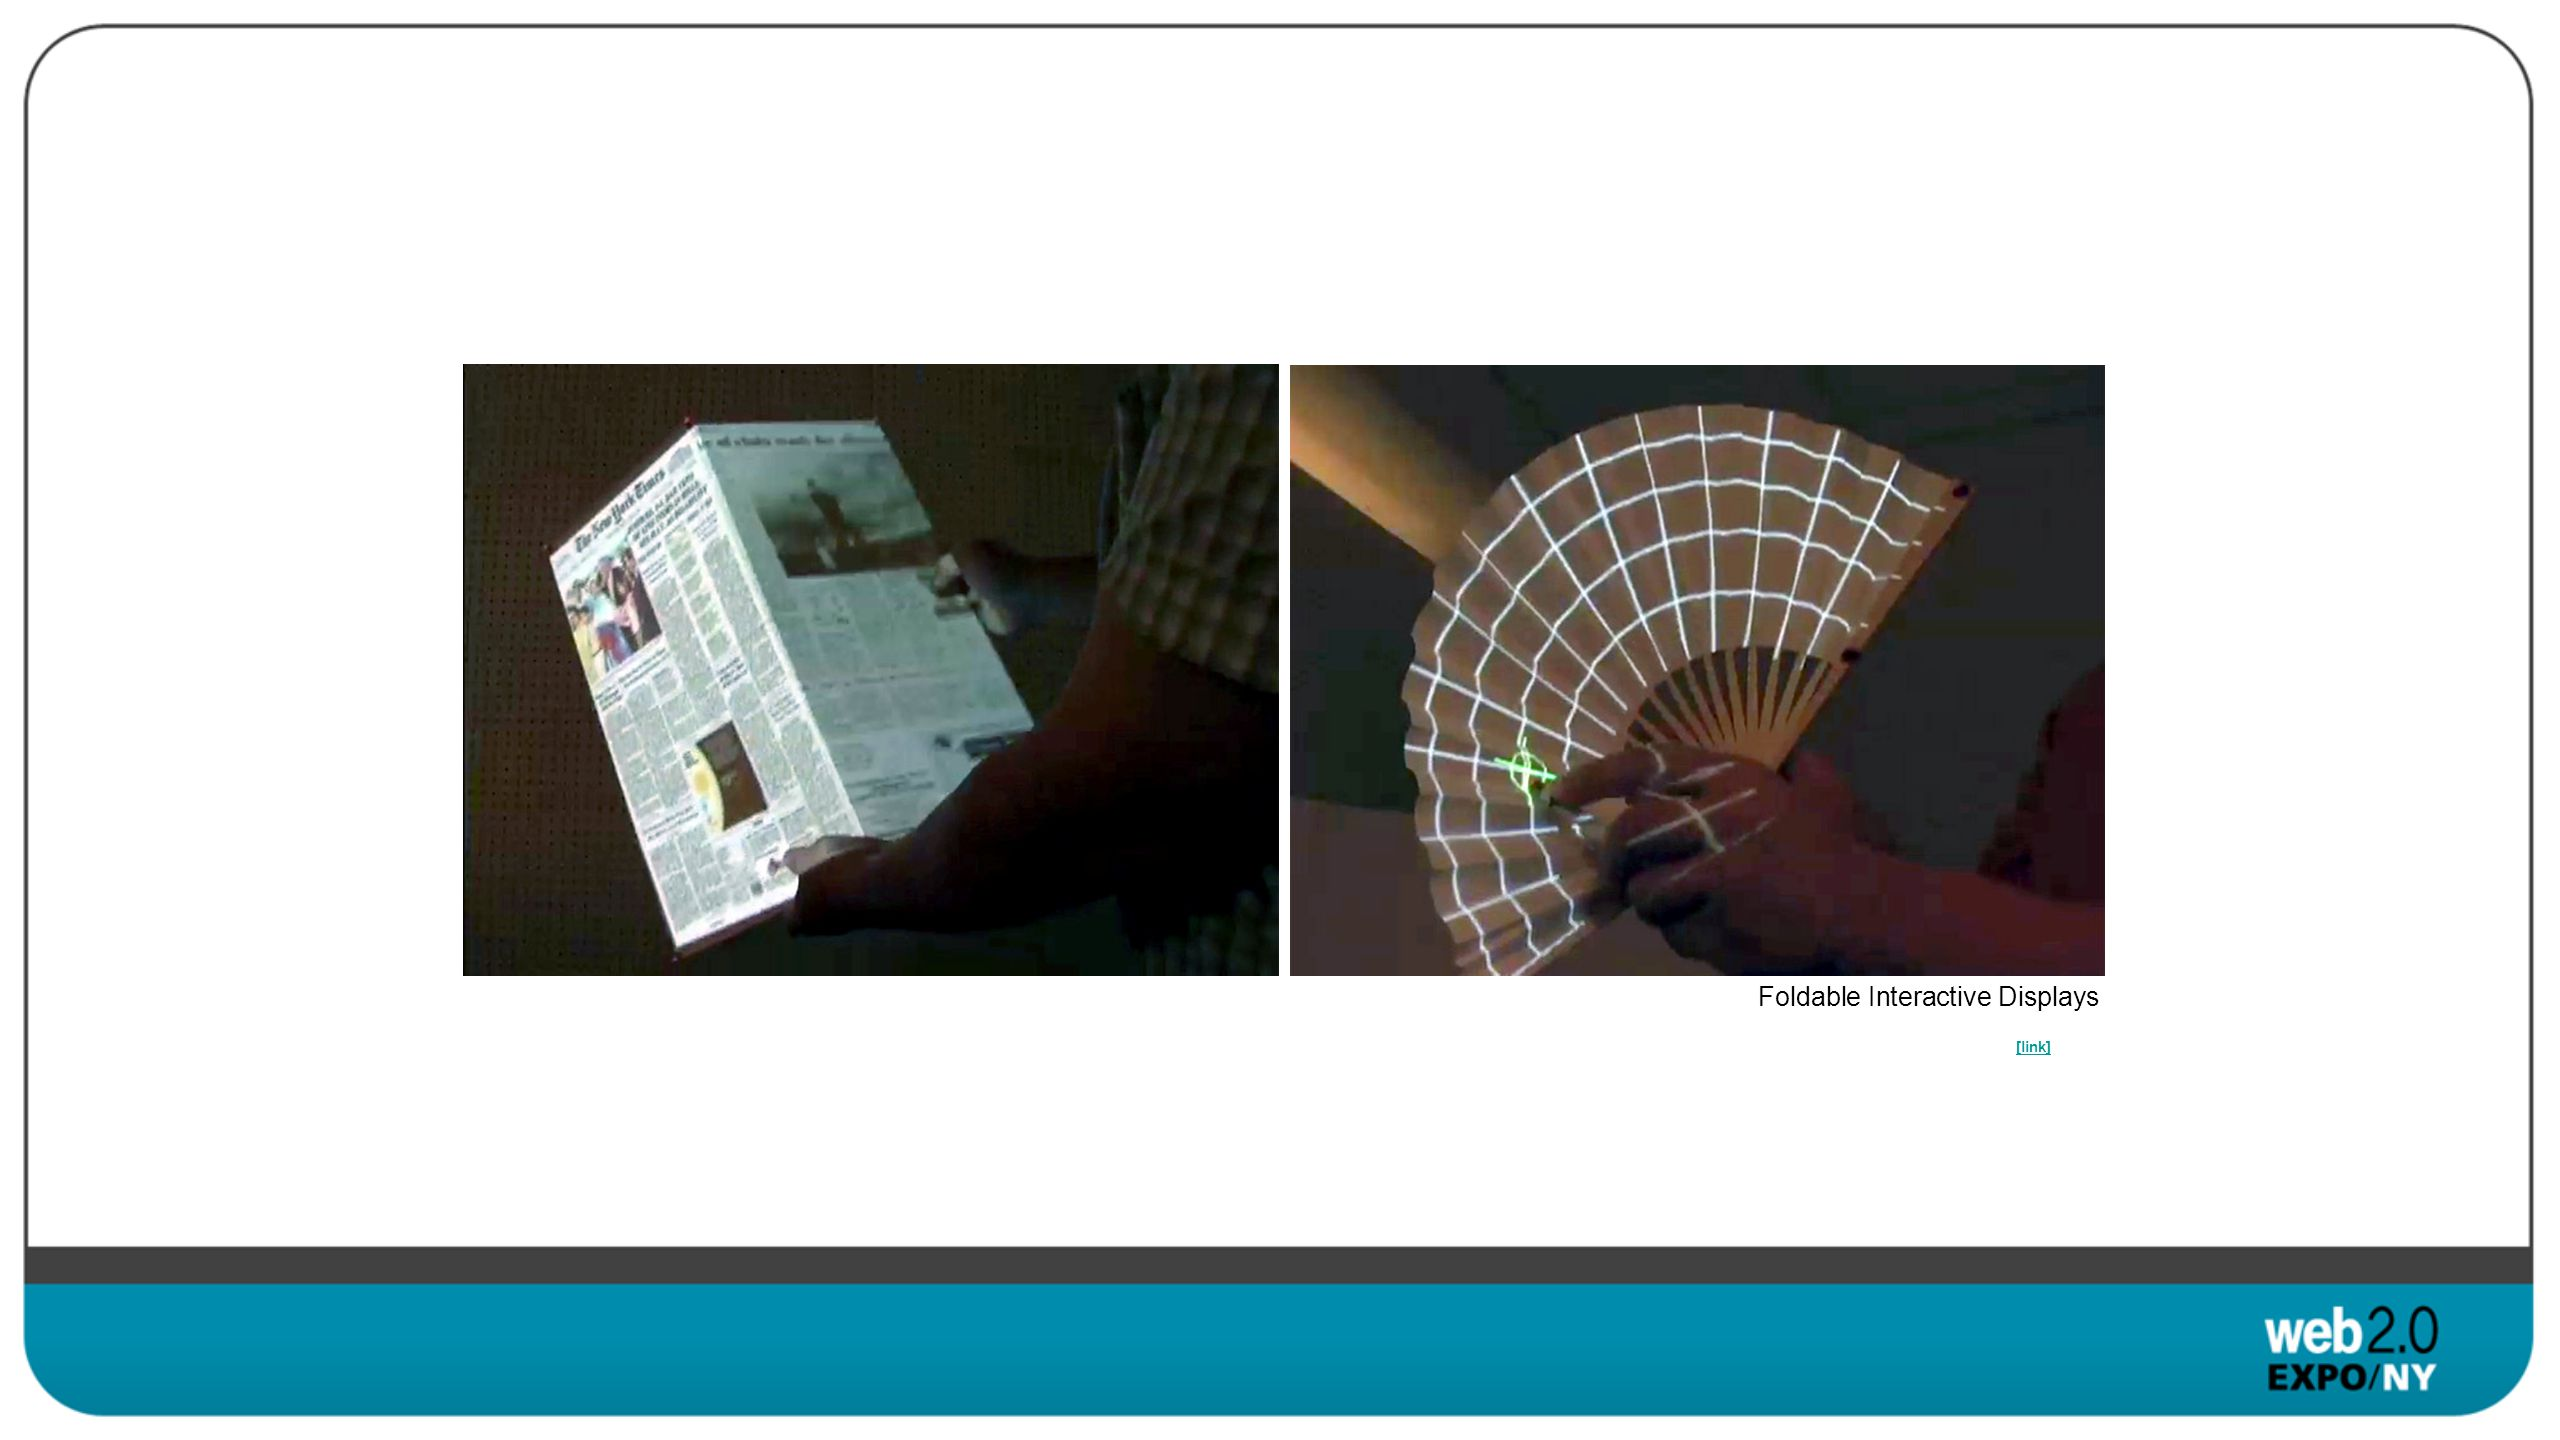 Foldable Interactive Displays